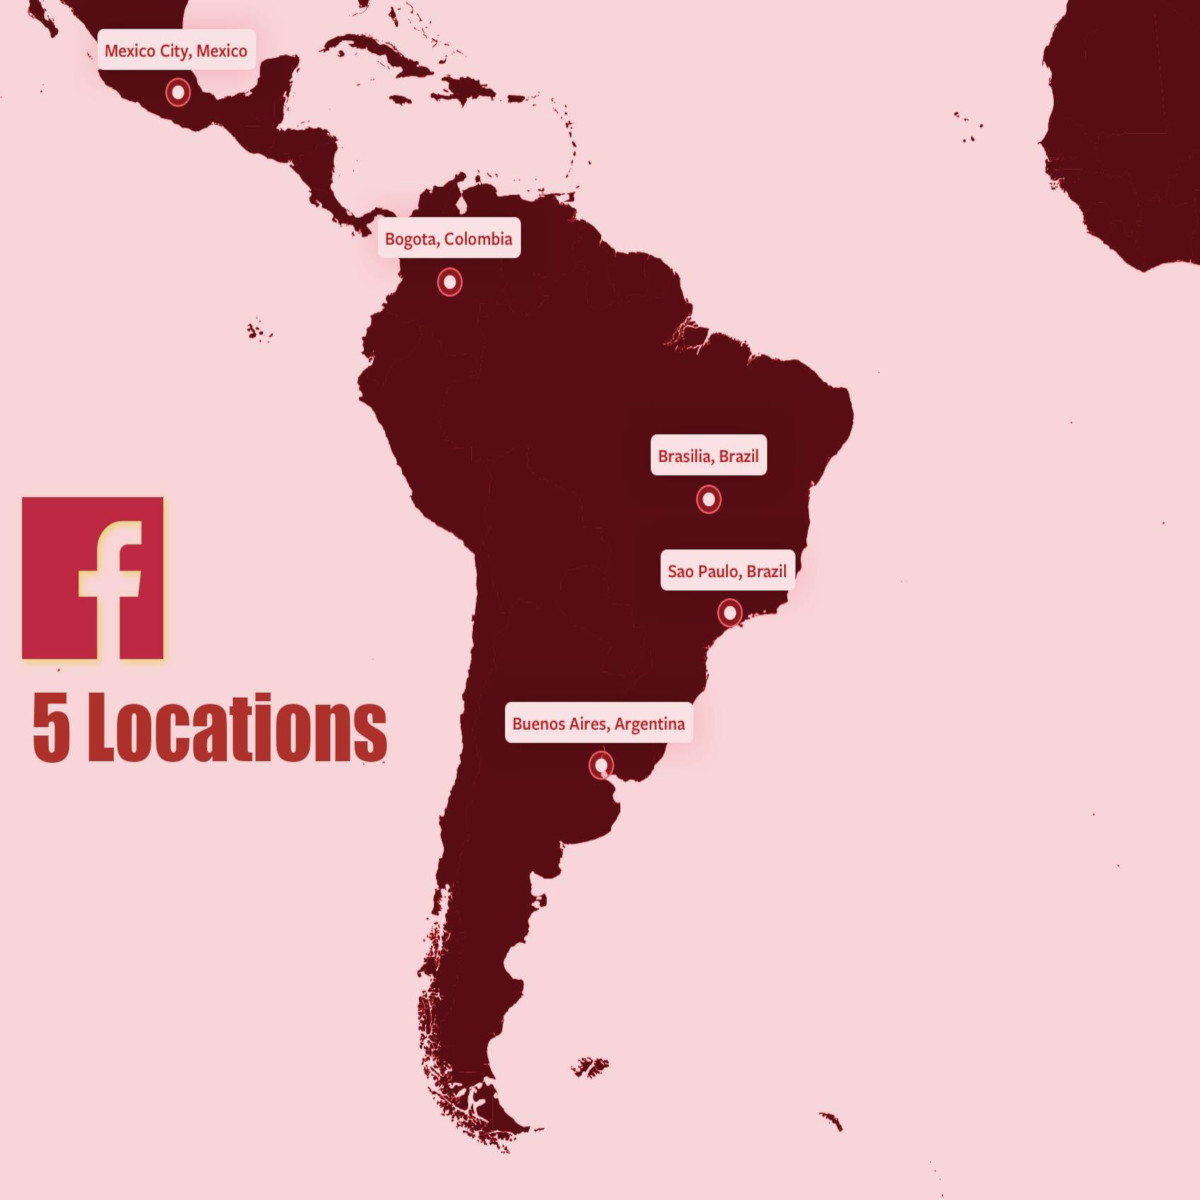 Facebook Location Map of South American Continent.